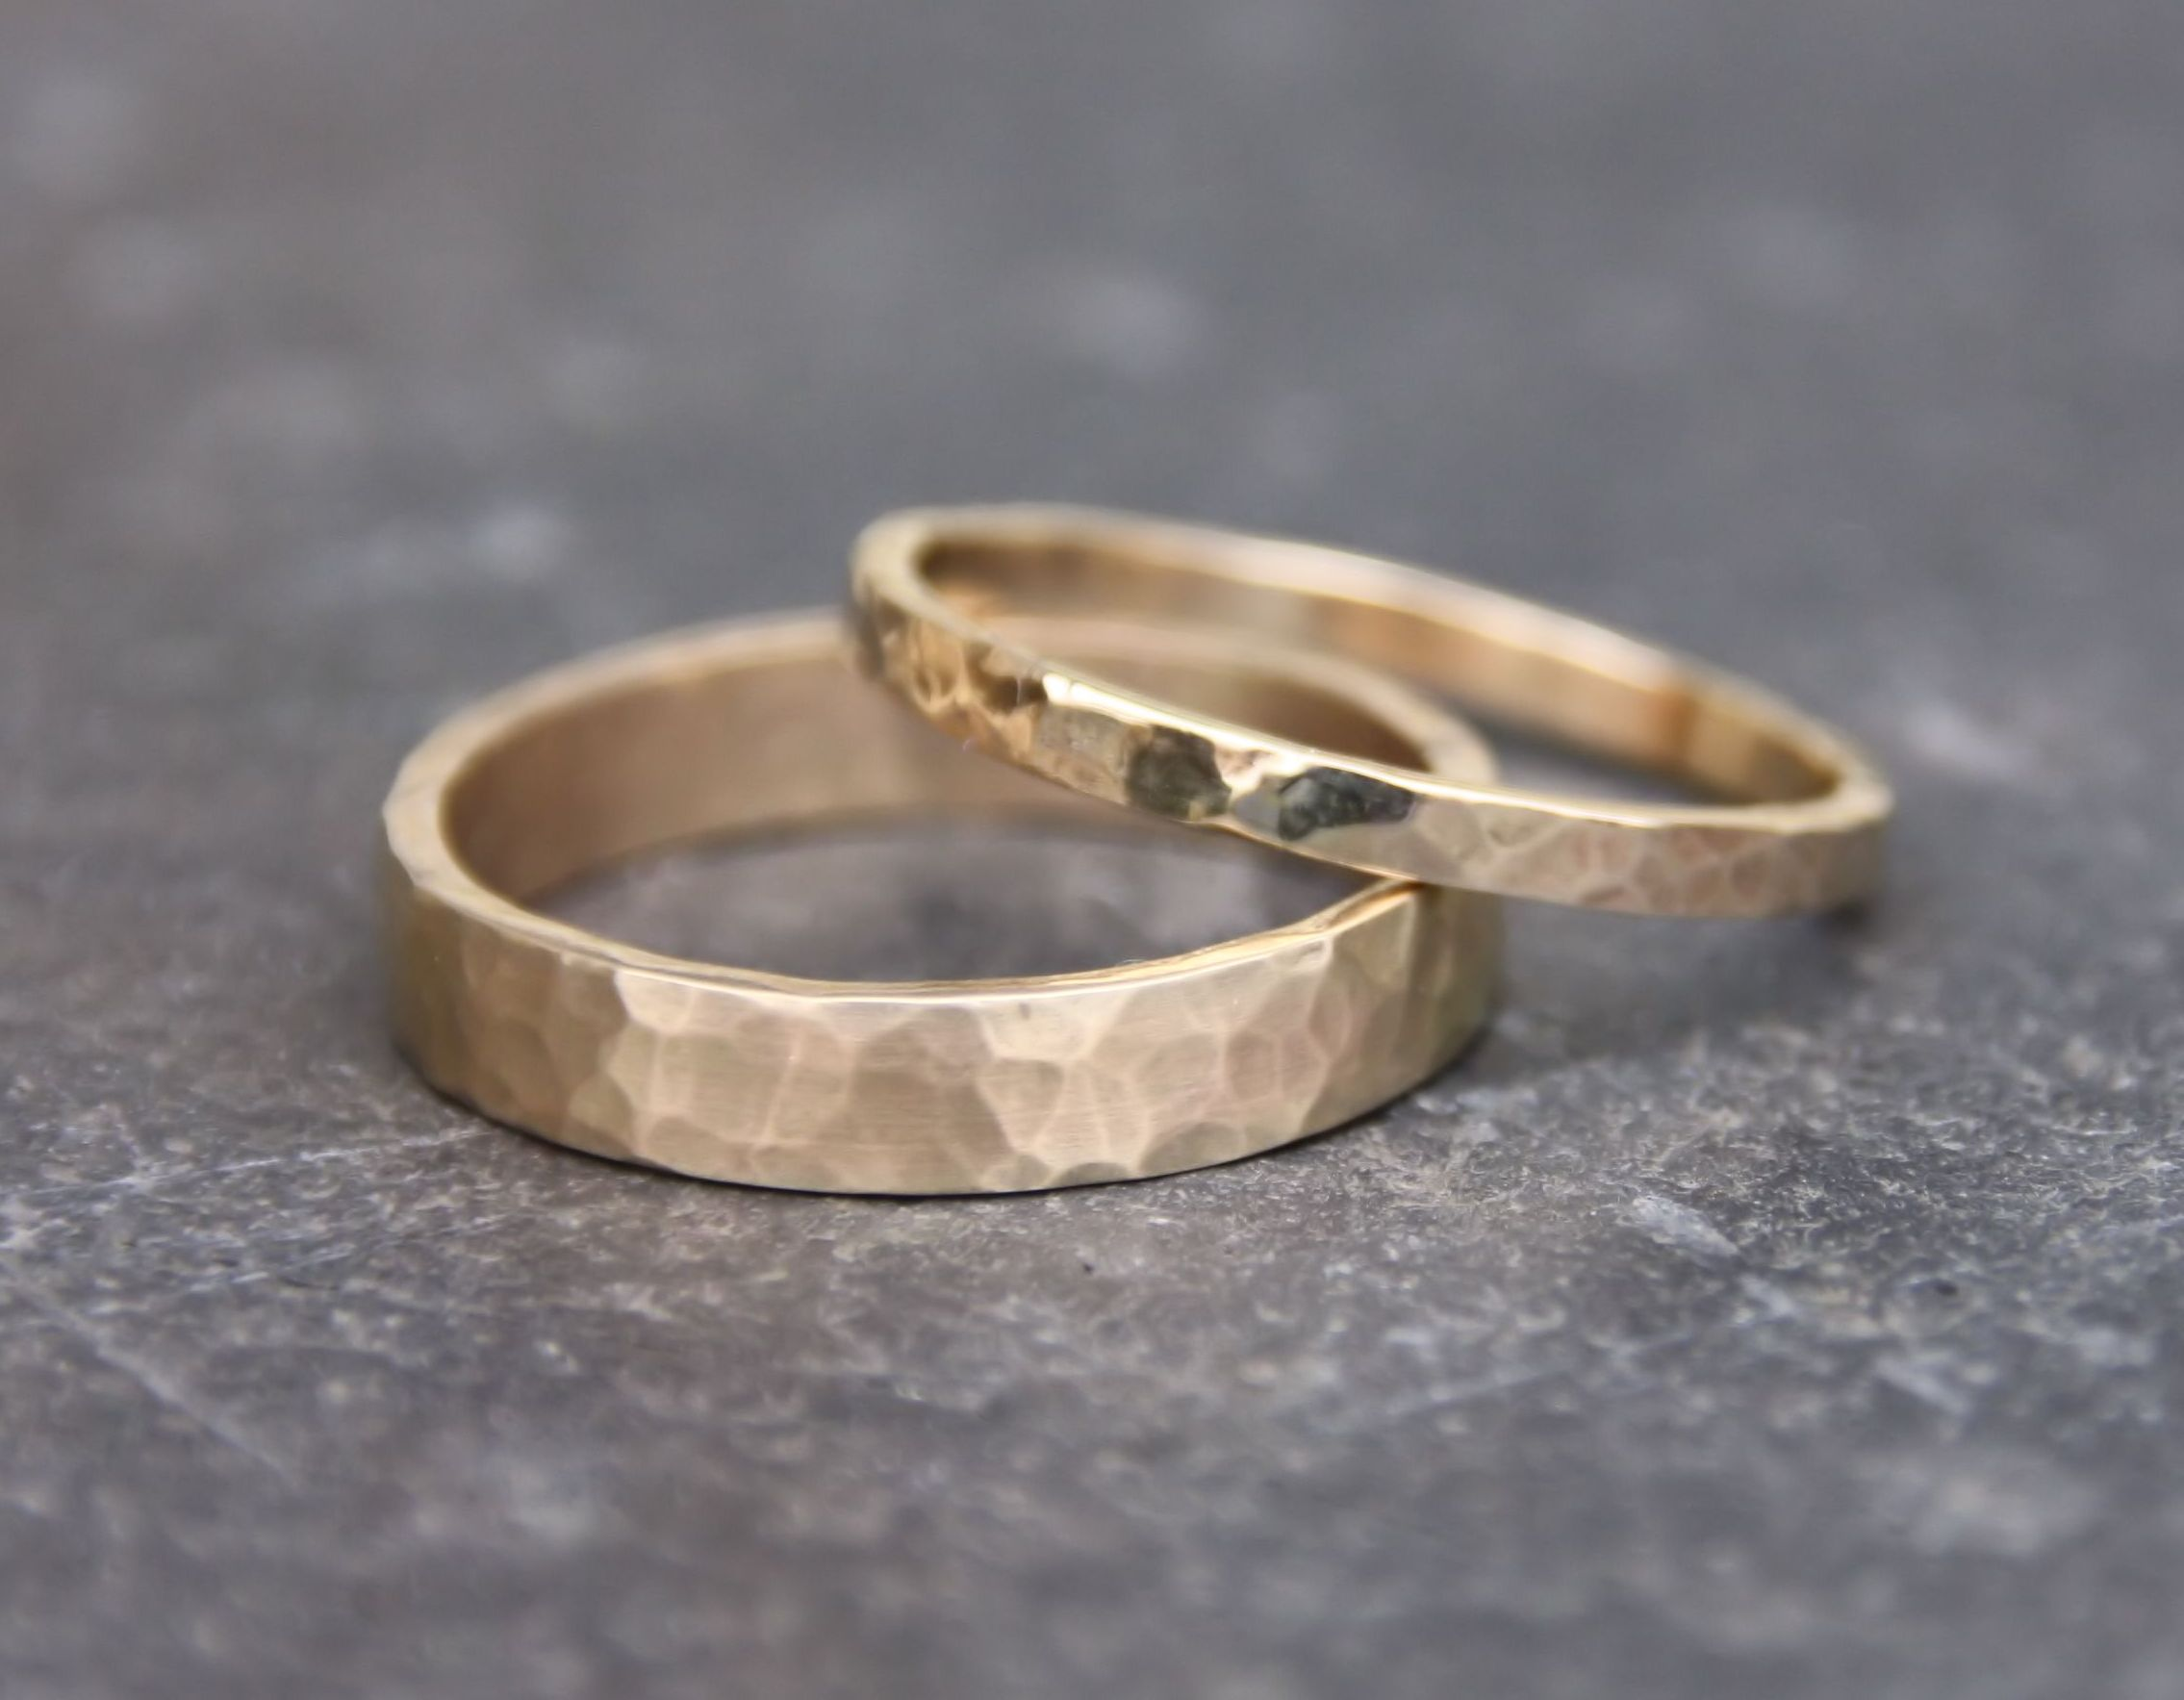 jewelry, rings, gold, wedding ring, wedding band